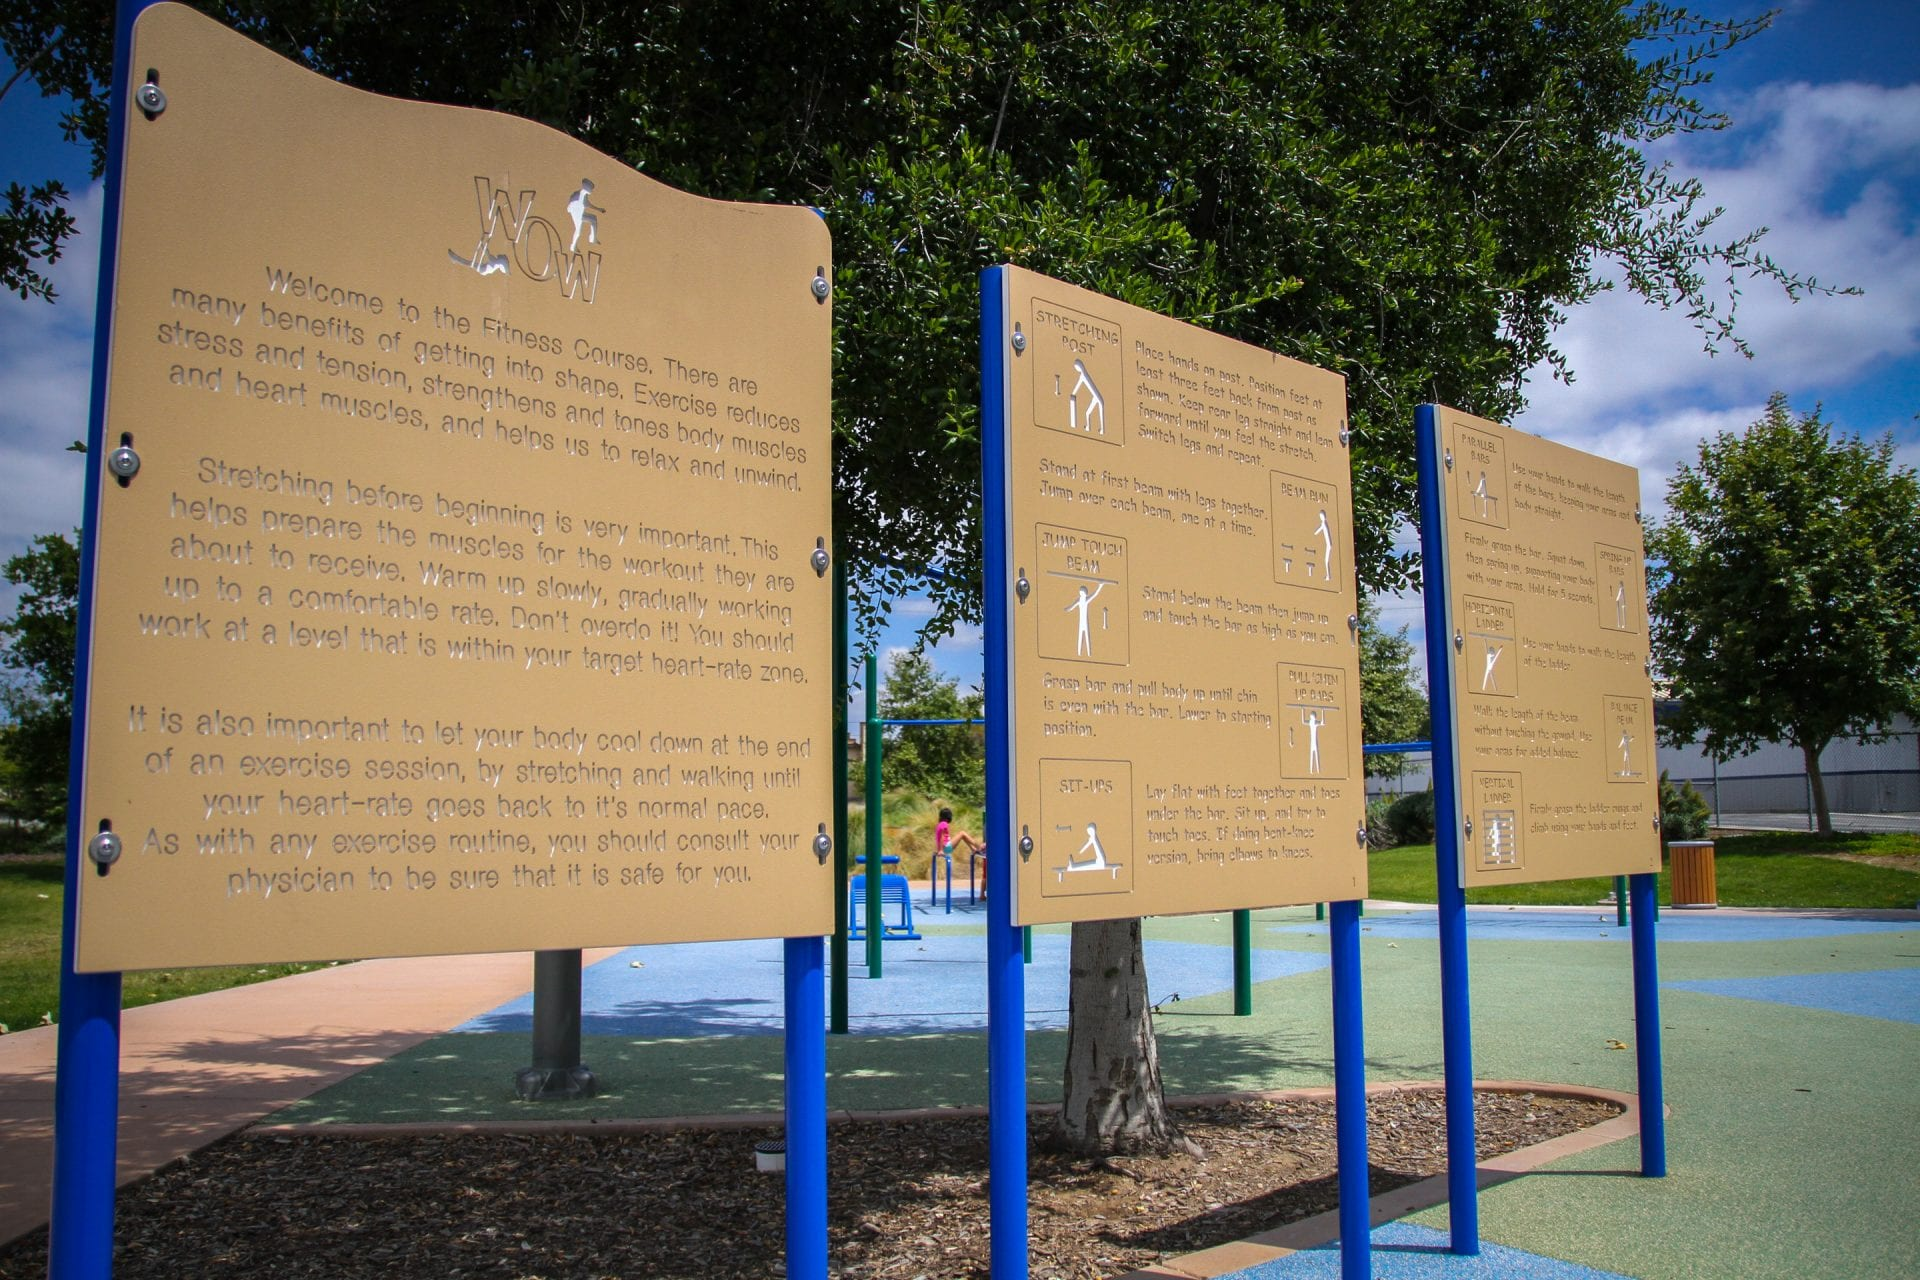 Instructional exercise signs